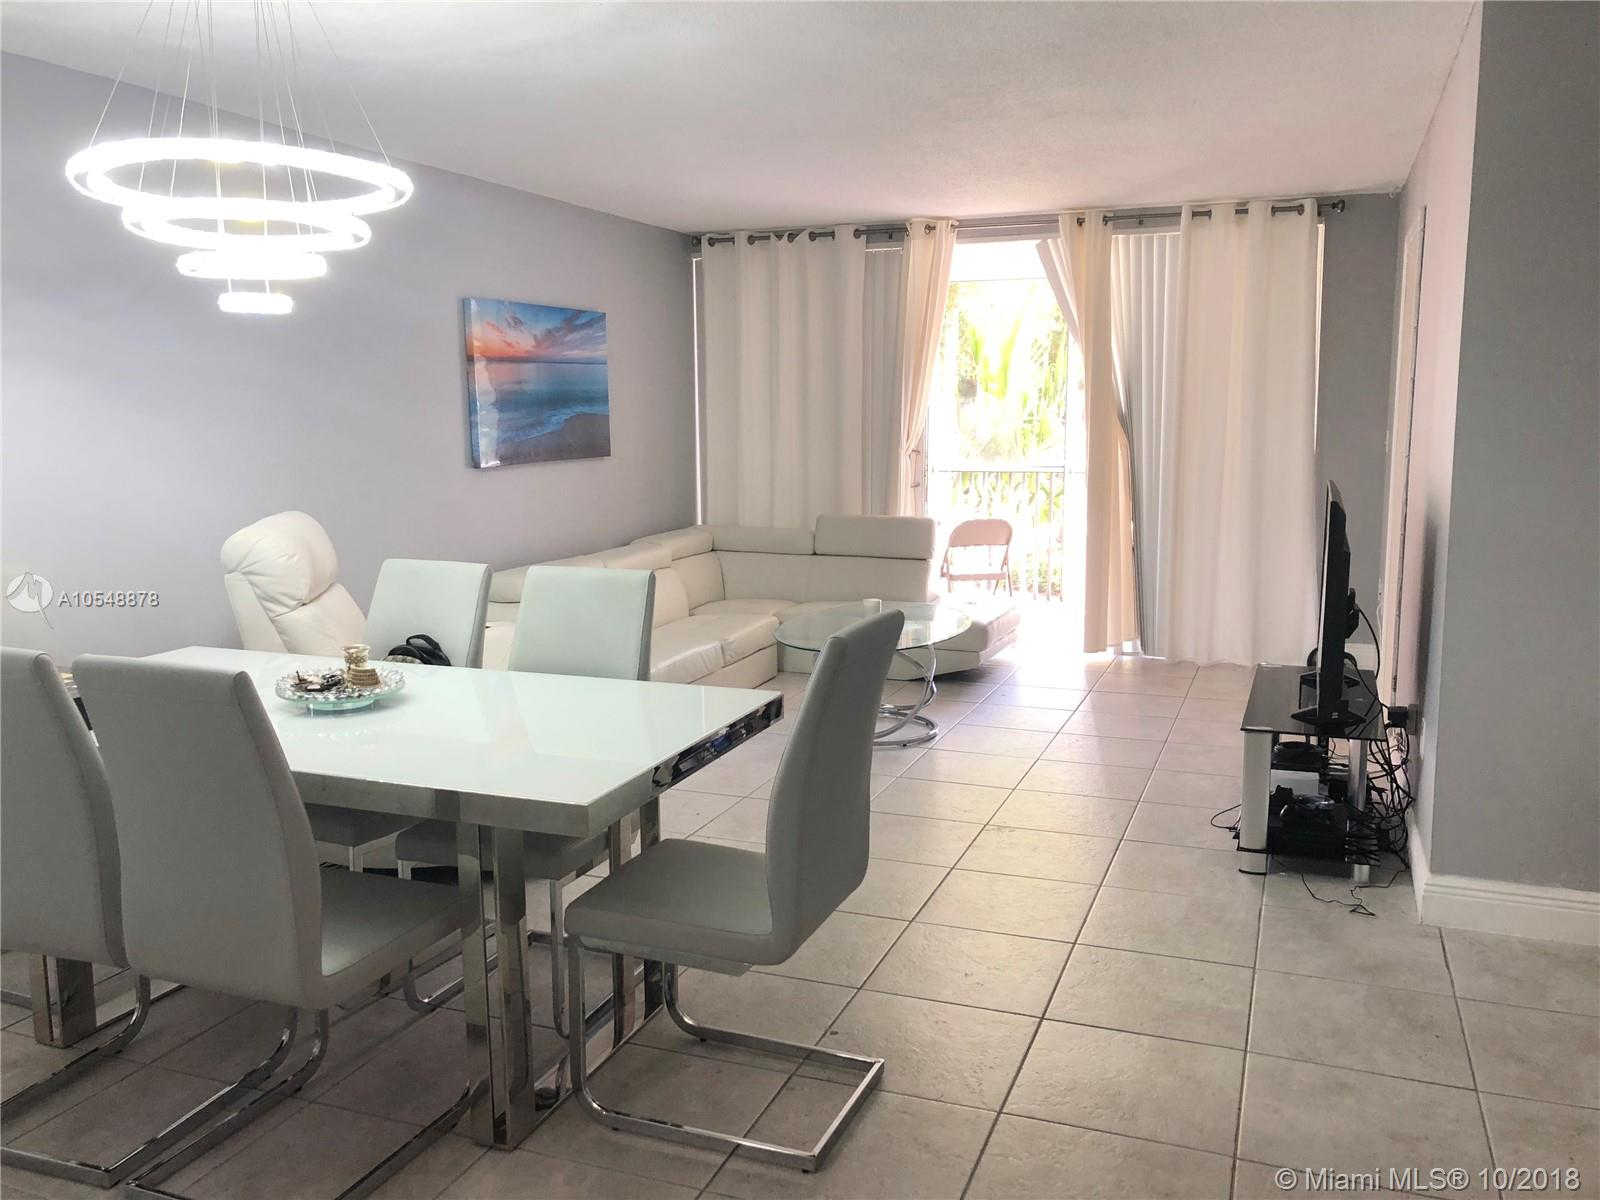 1670 NE 191st St #204-3, Miami, FL 33179 now has a new price of $107,000!